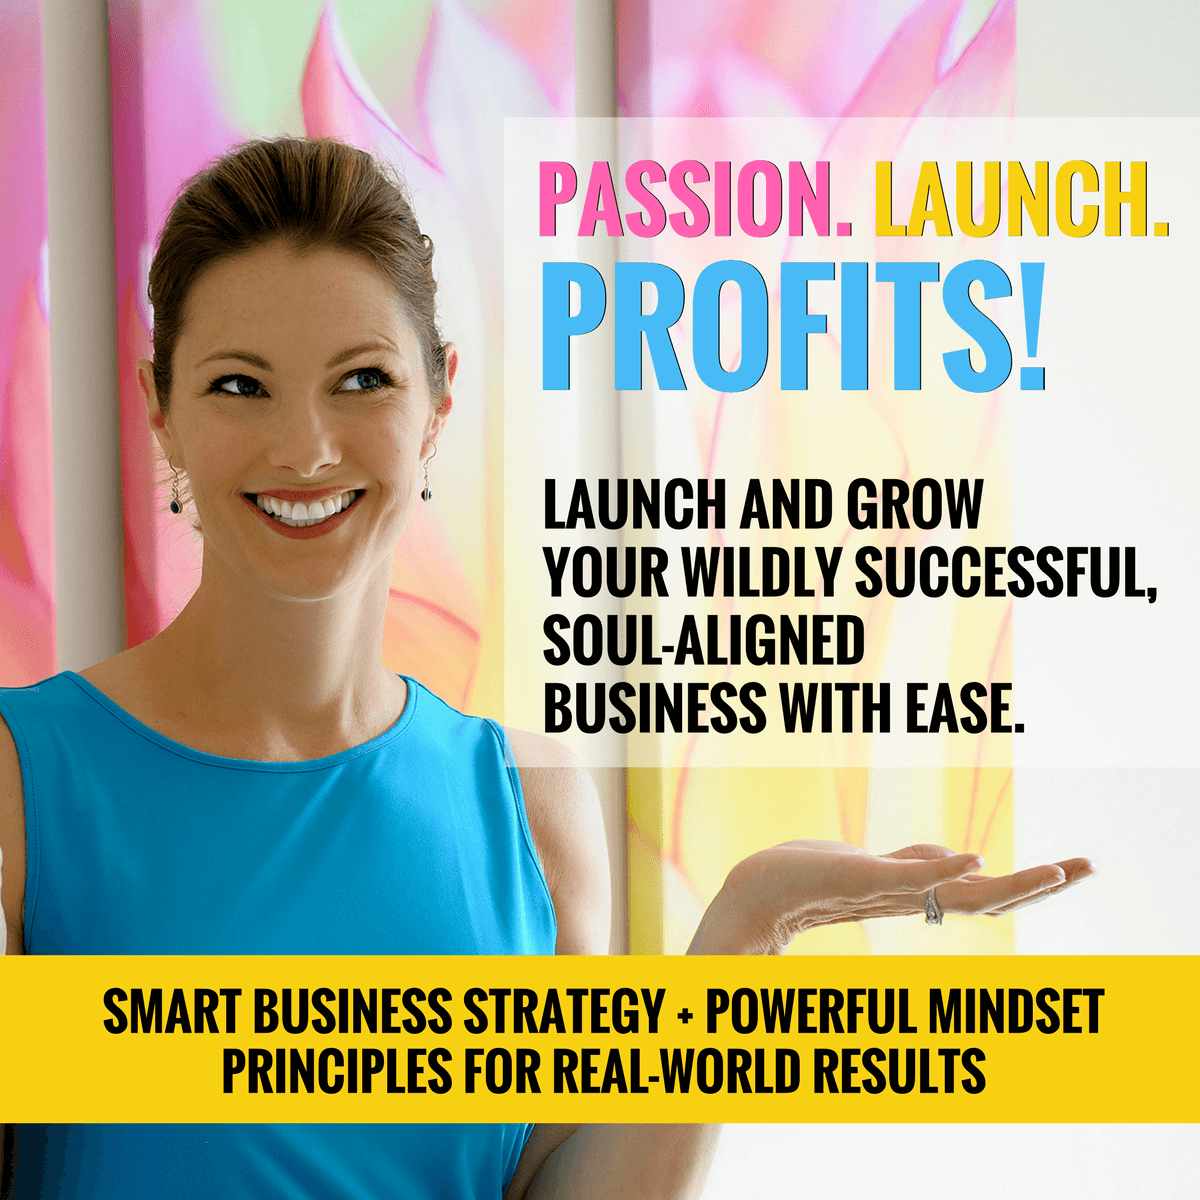 """Passion, Launch, Profits! > Launch + grow your passion-based business  You're passionately dedicated to doing work that sets your heart on fire, supports the kind of life you want to have and makes a big difference beyond the dollars it puts in your bank account.  You're determined to build a wildly successful business without sacrificing everything that matters along the way.  And, even though you may not have the business and life you dream about yet, you're ambitious, highly motivated and know that with the right mentor, you'll get there.  But there are just a couple of problems...  You're drowning in """"how to"""" information without being able to piece it all together.  You're struggling to make any real progress toward turning your passion into money in the bank.  And you're starting to wonder if it's things are ever going to start clicking for you so you can finally have the amazing business and lifestyle you've been dreaming about.  You think, """"Why does it have to be so hard?!""""  Here's the truth…  It doesn't have to be so hard for you.  Sometimes all it takes is someone to fill in a few missing pieces, help you make a critical mindset shift or give you support you need to for it to all start working beautifully.  Learn more about Passion, Launch, Profits! at  http://christineparma.com/passion-launch-profits    #entrepreneur #entrepreneurship #money #business #signatureprogram #startup #mompreneur #creativeentrepreneur #lifecoach #businesscoach"""